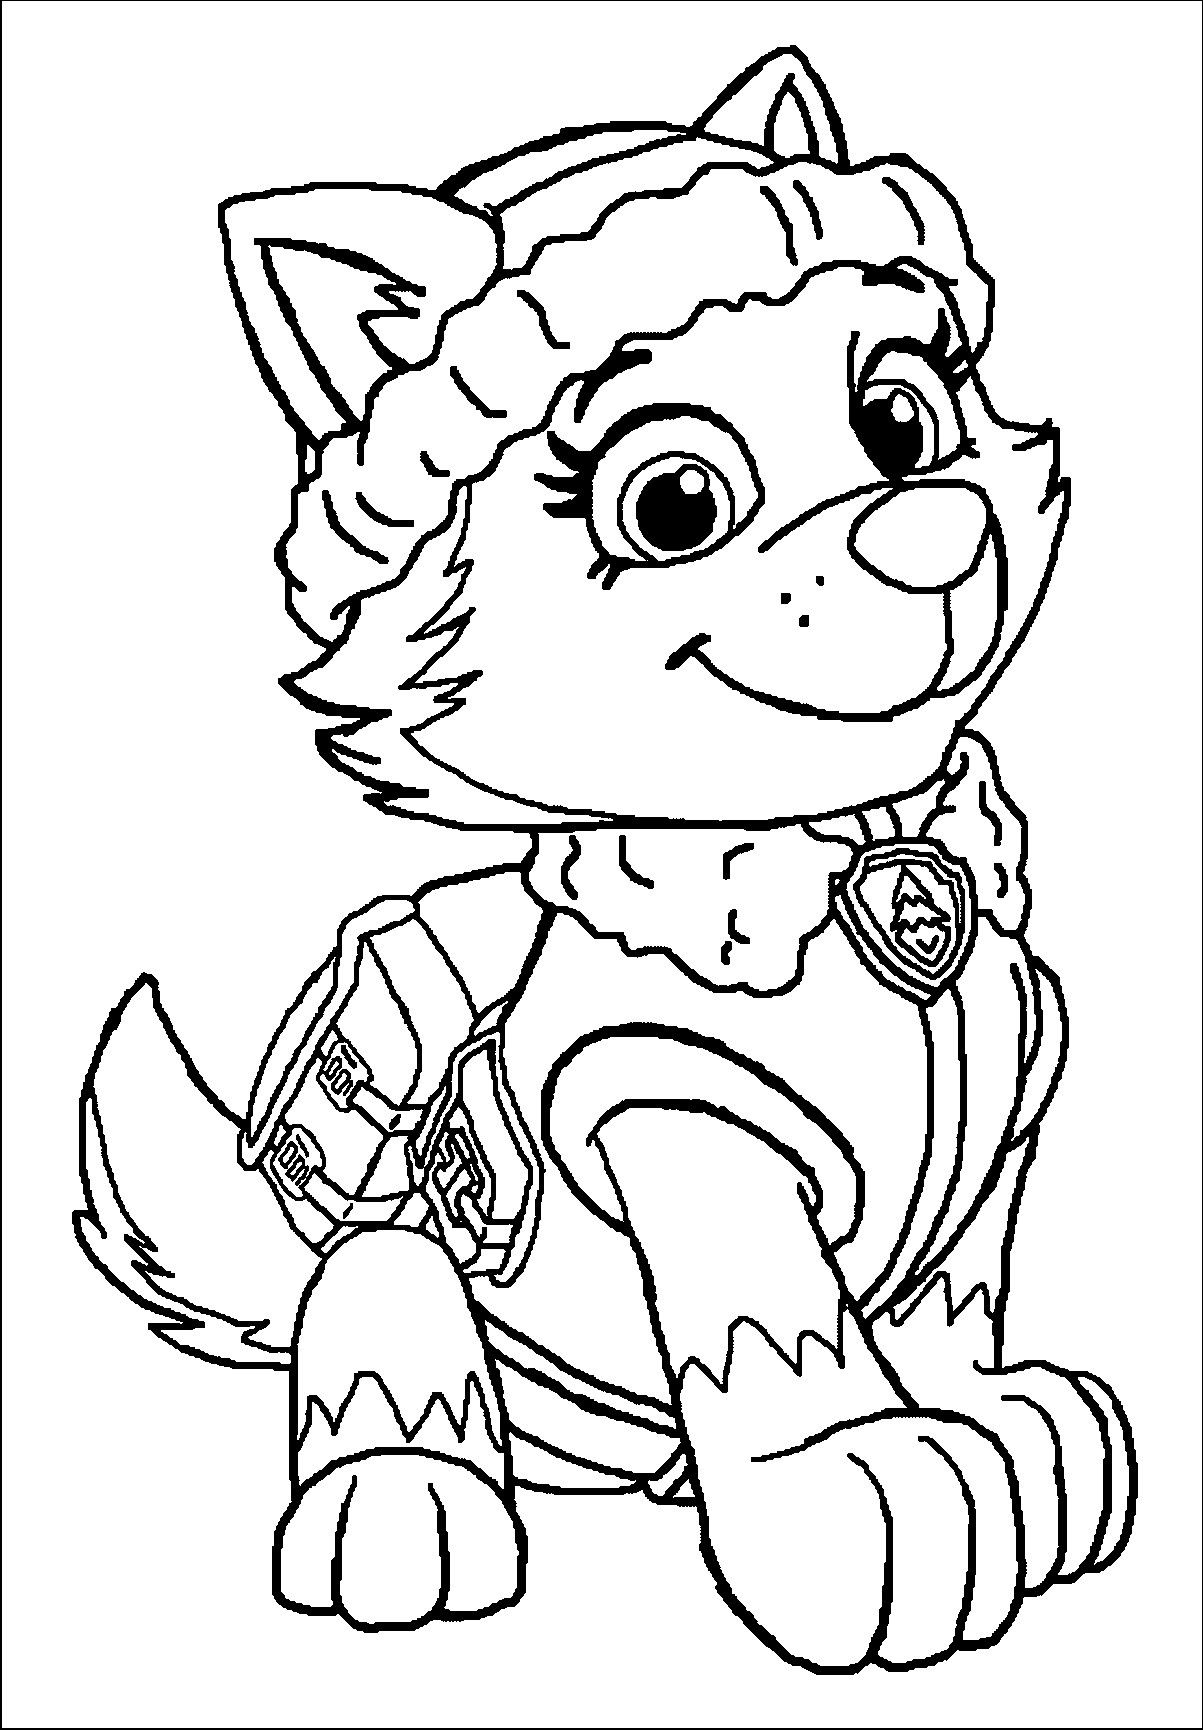 Everest Paw Patrol Coloring Page Youngandtae Com Paw Patrol Coloring Paw Patrol Coloring Pages Everest Paw Patrol